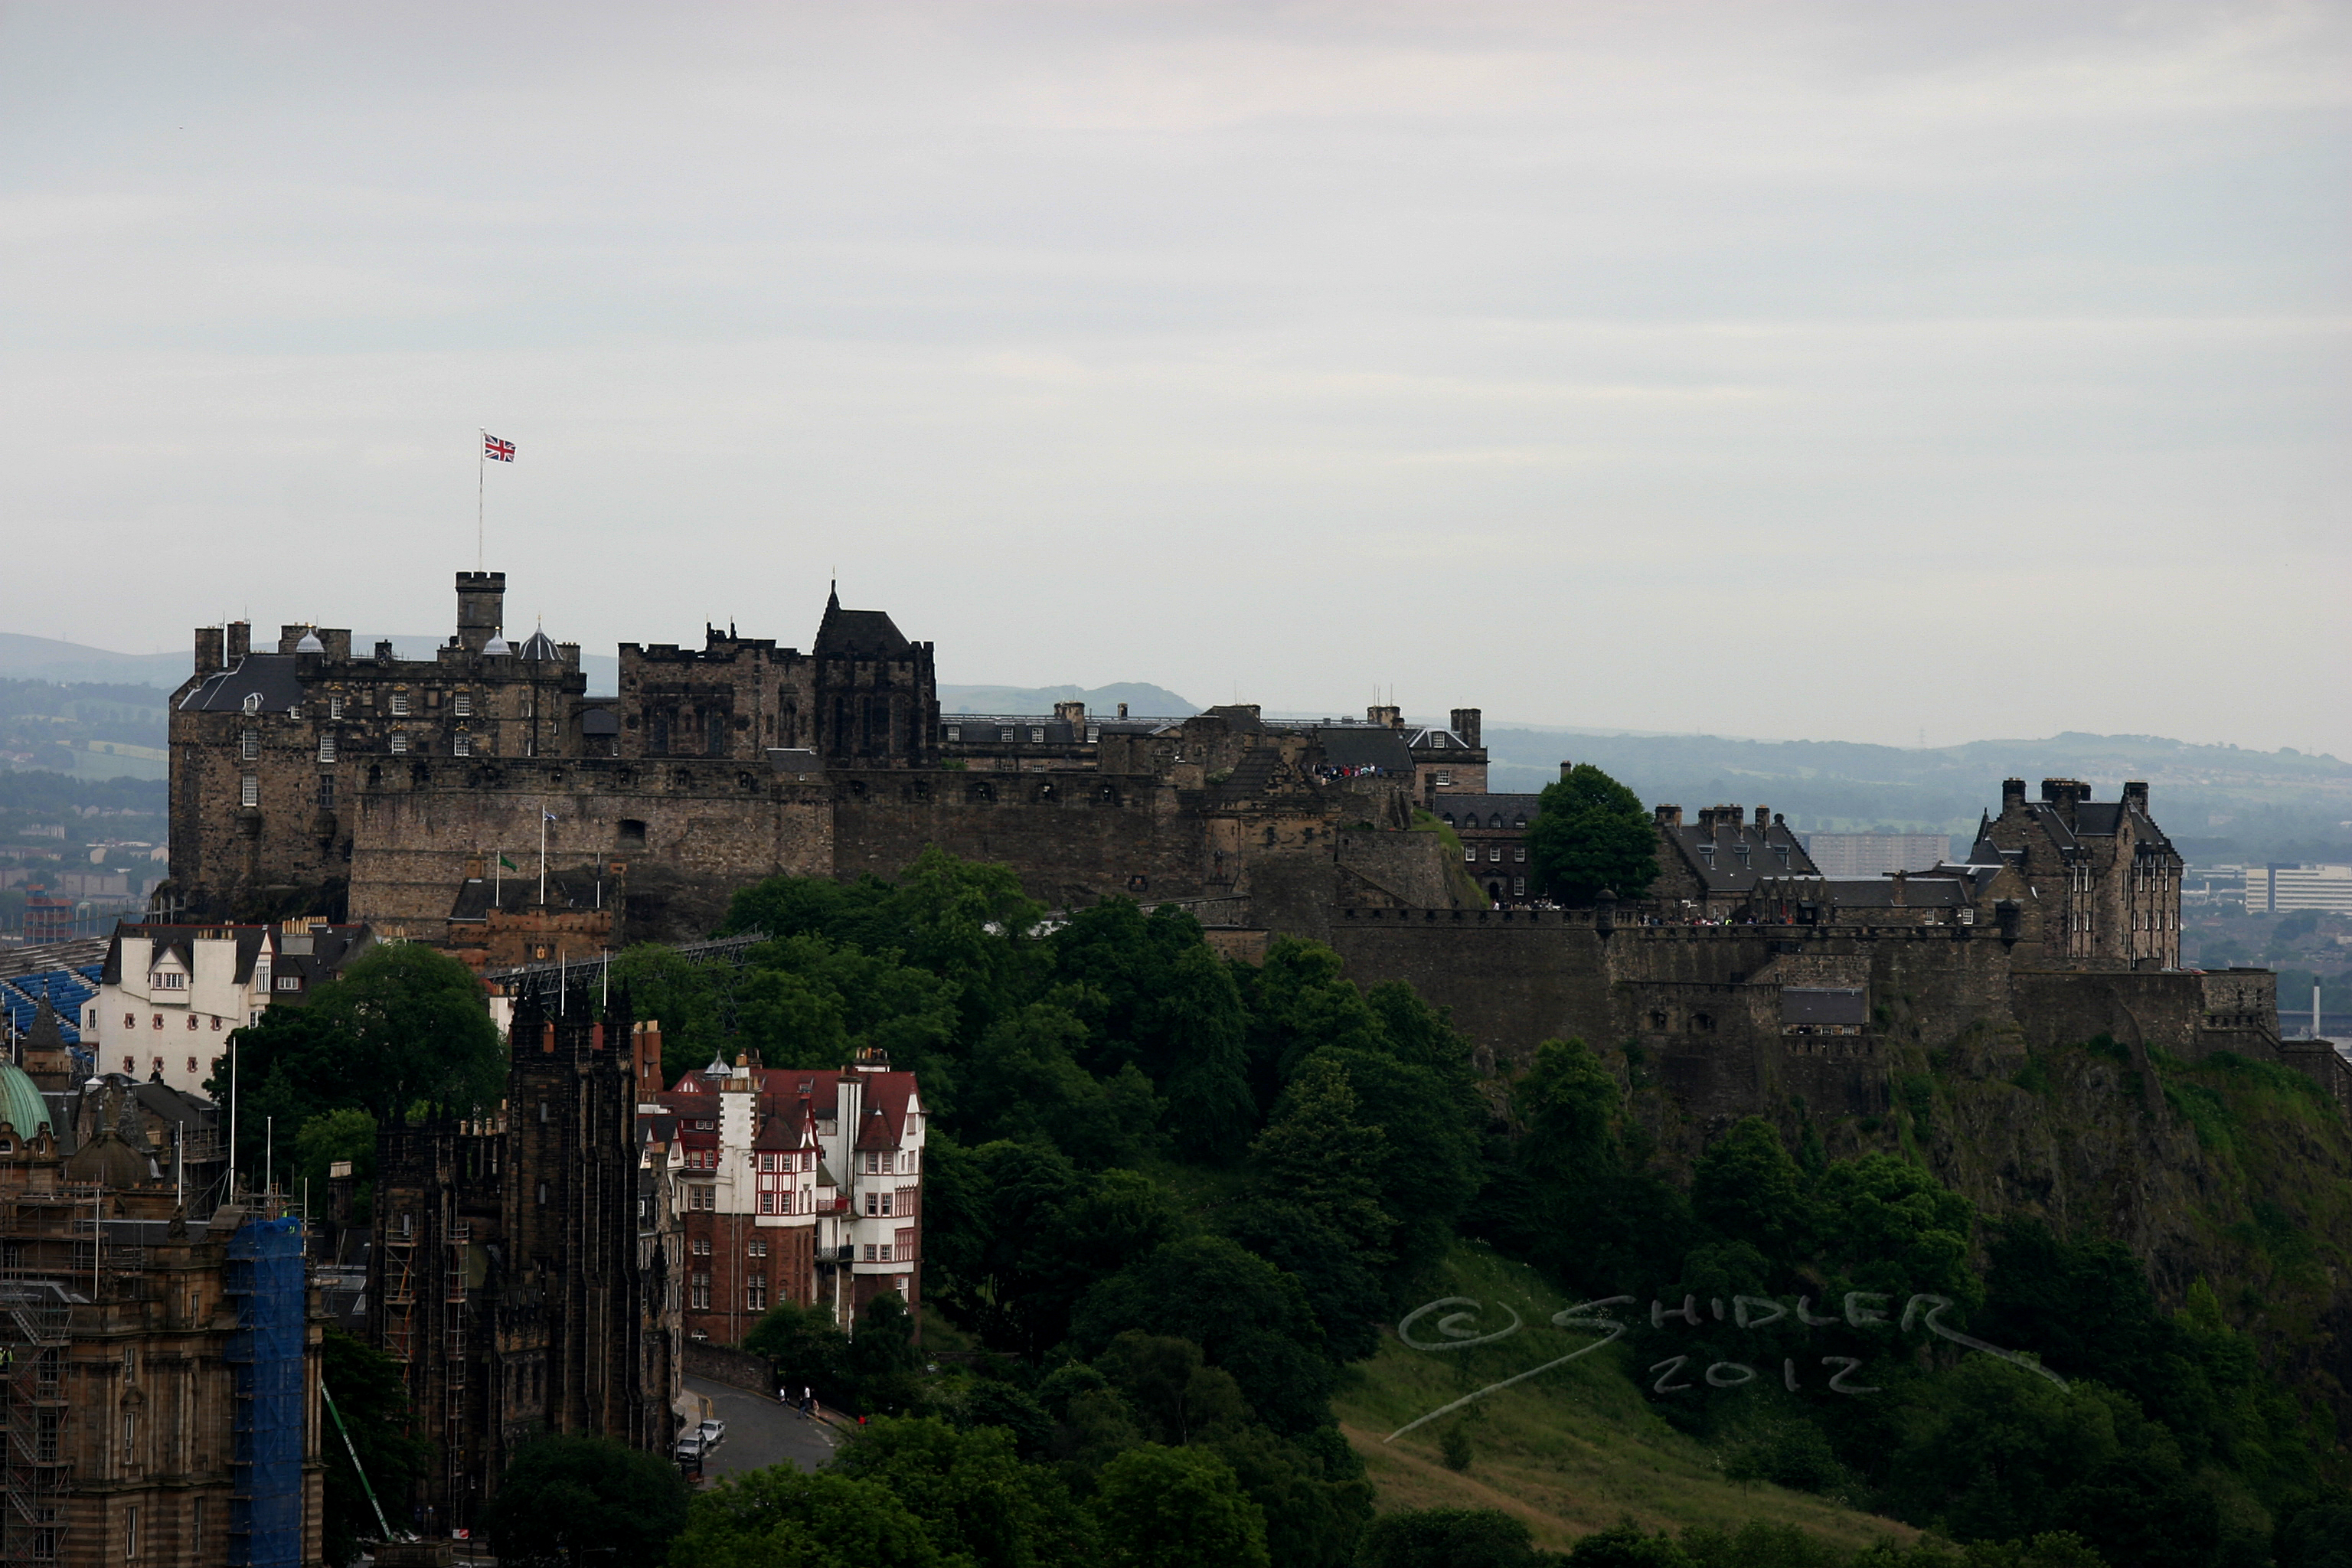 Castle Edinburgh by vikingjon